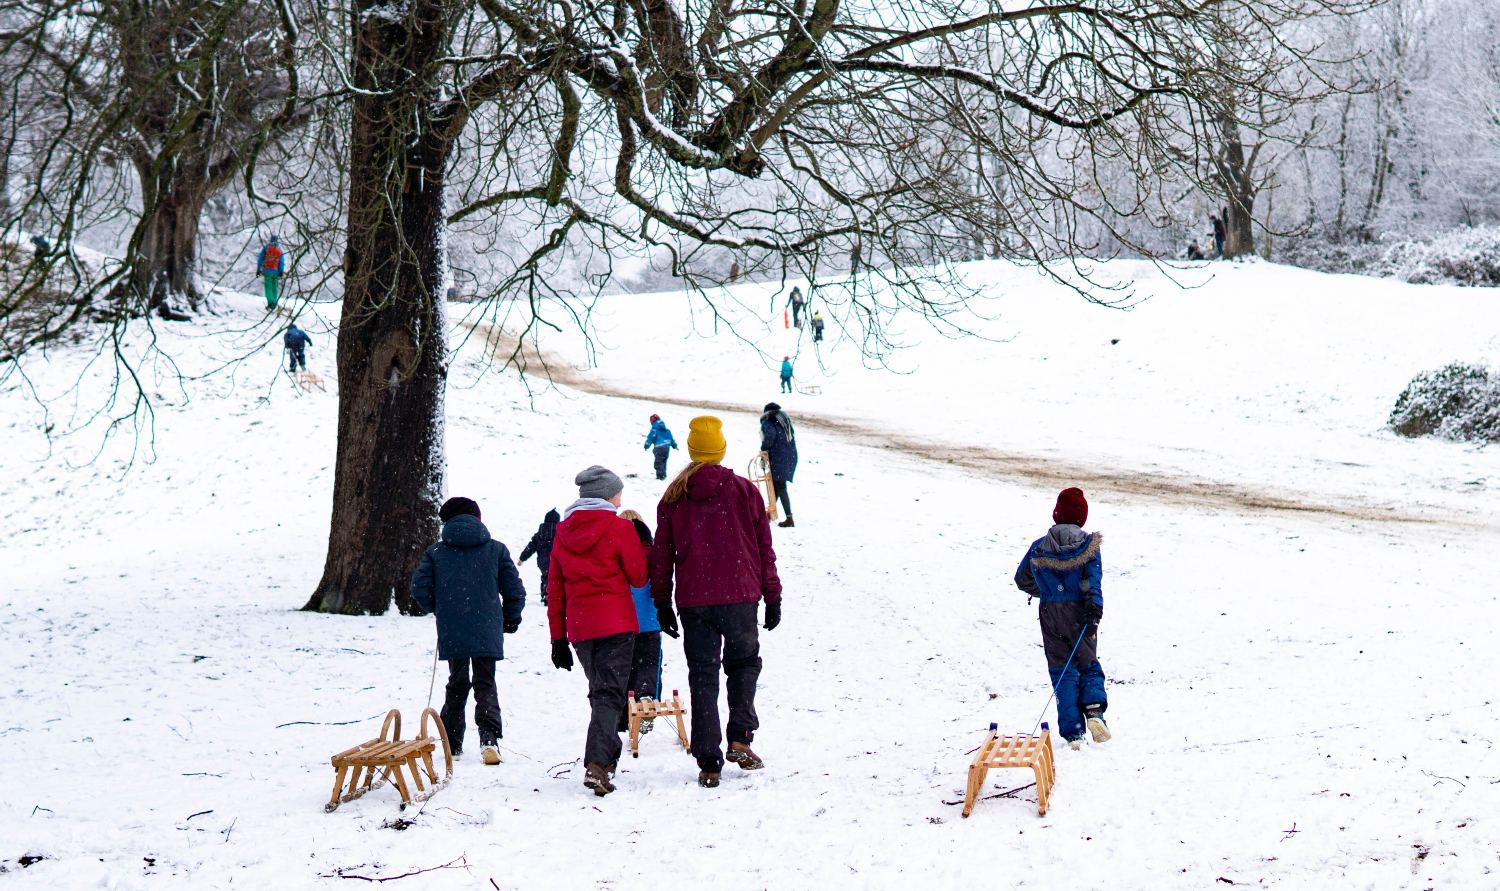 Why Germany is facing extreme winter weather this month